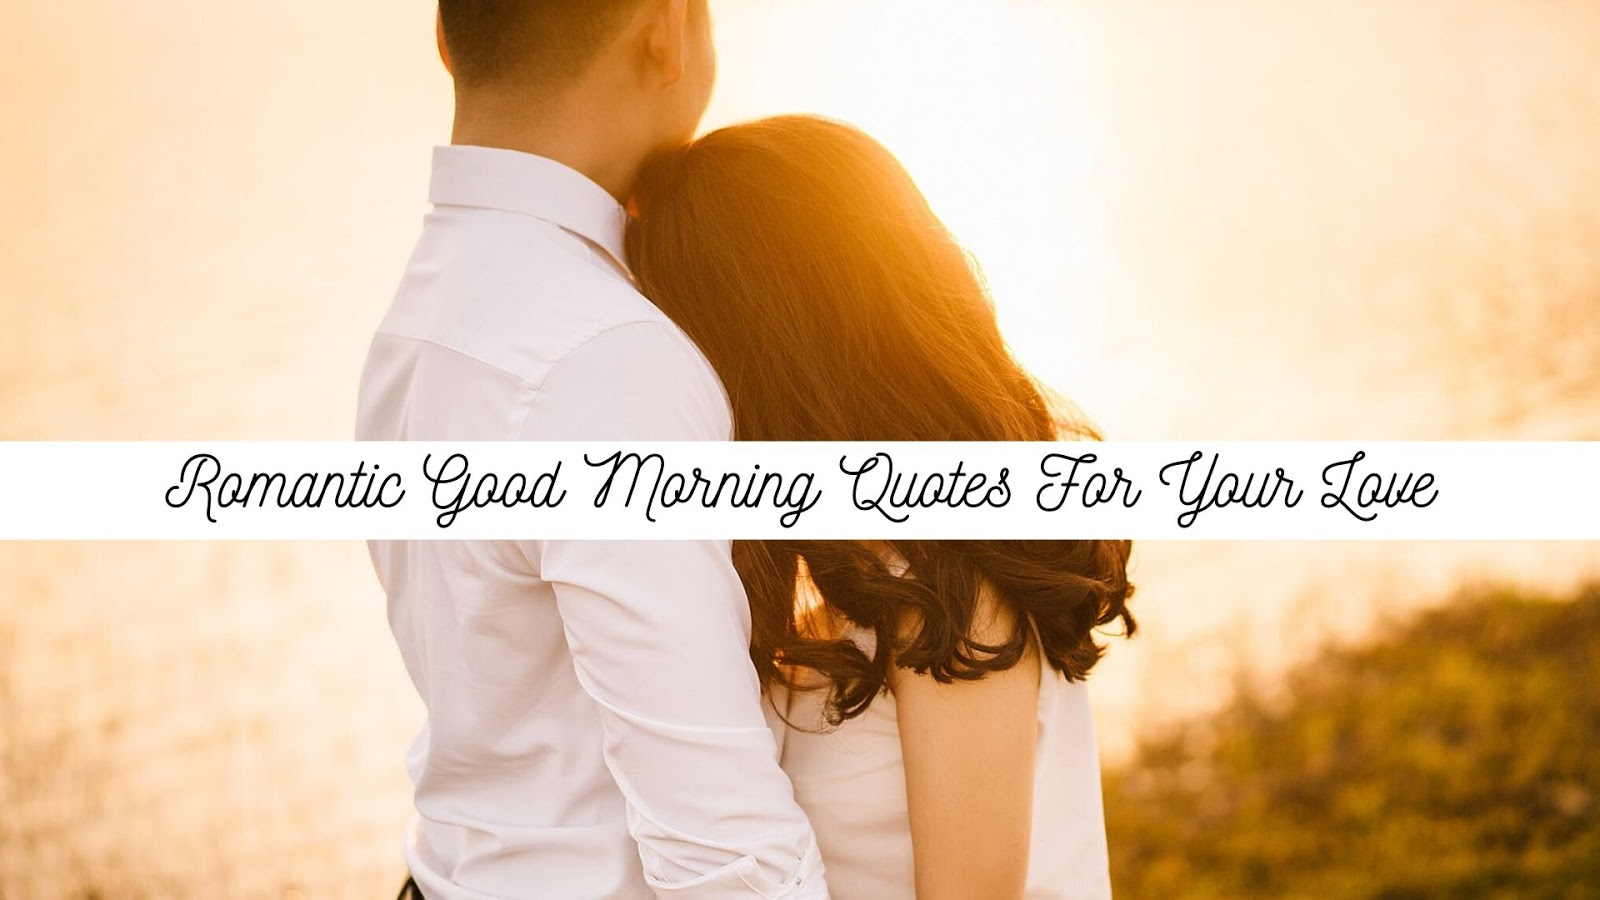 Romantic Good Morning Quotes For Love hd images